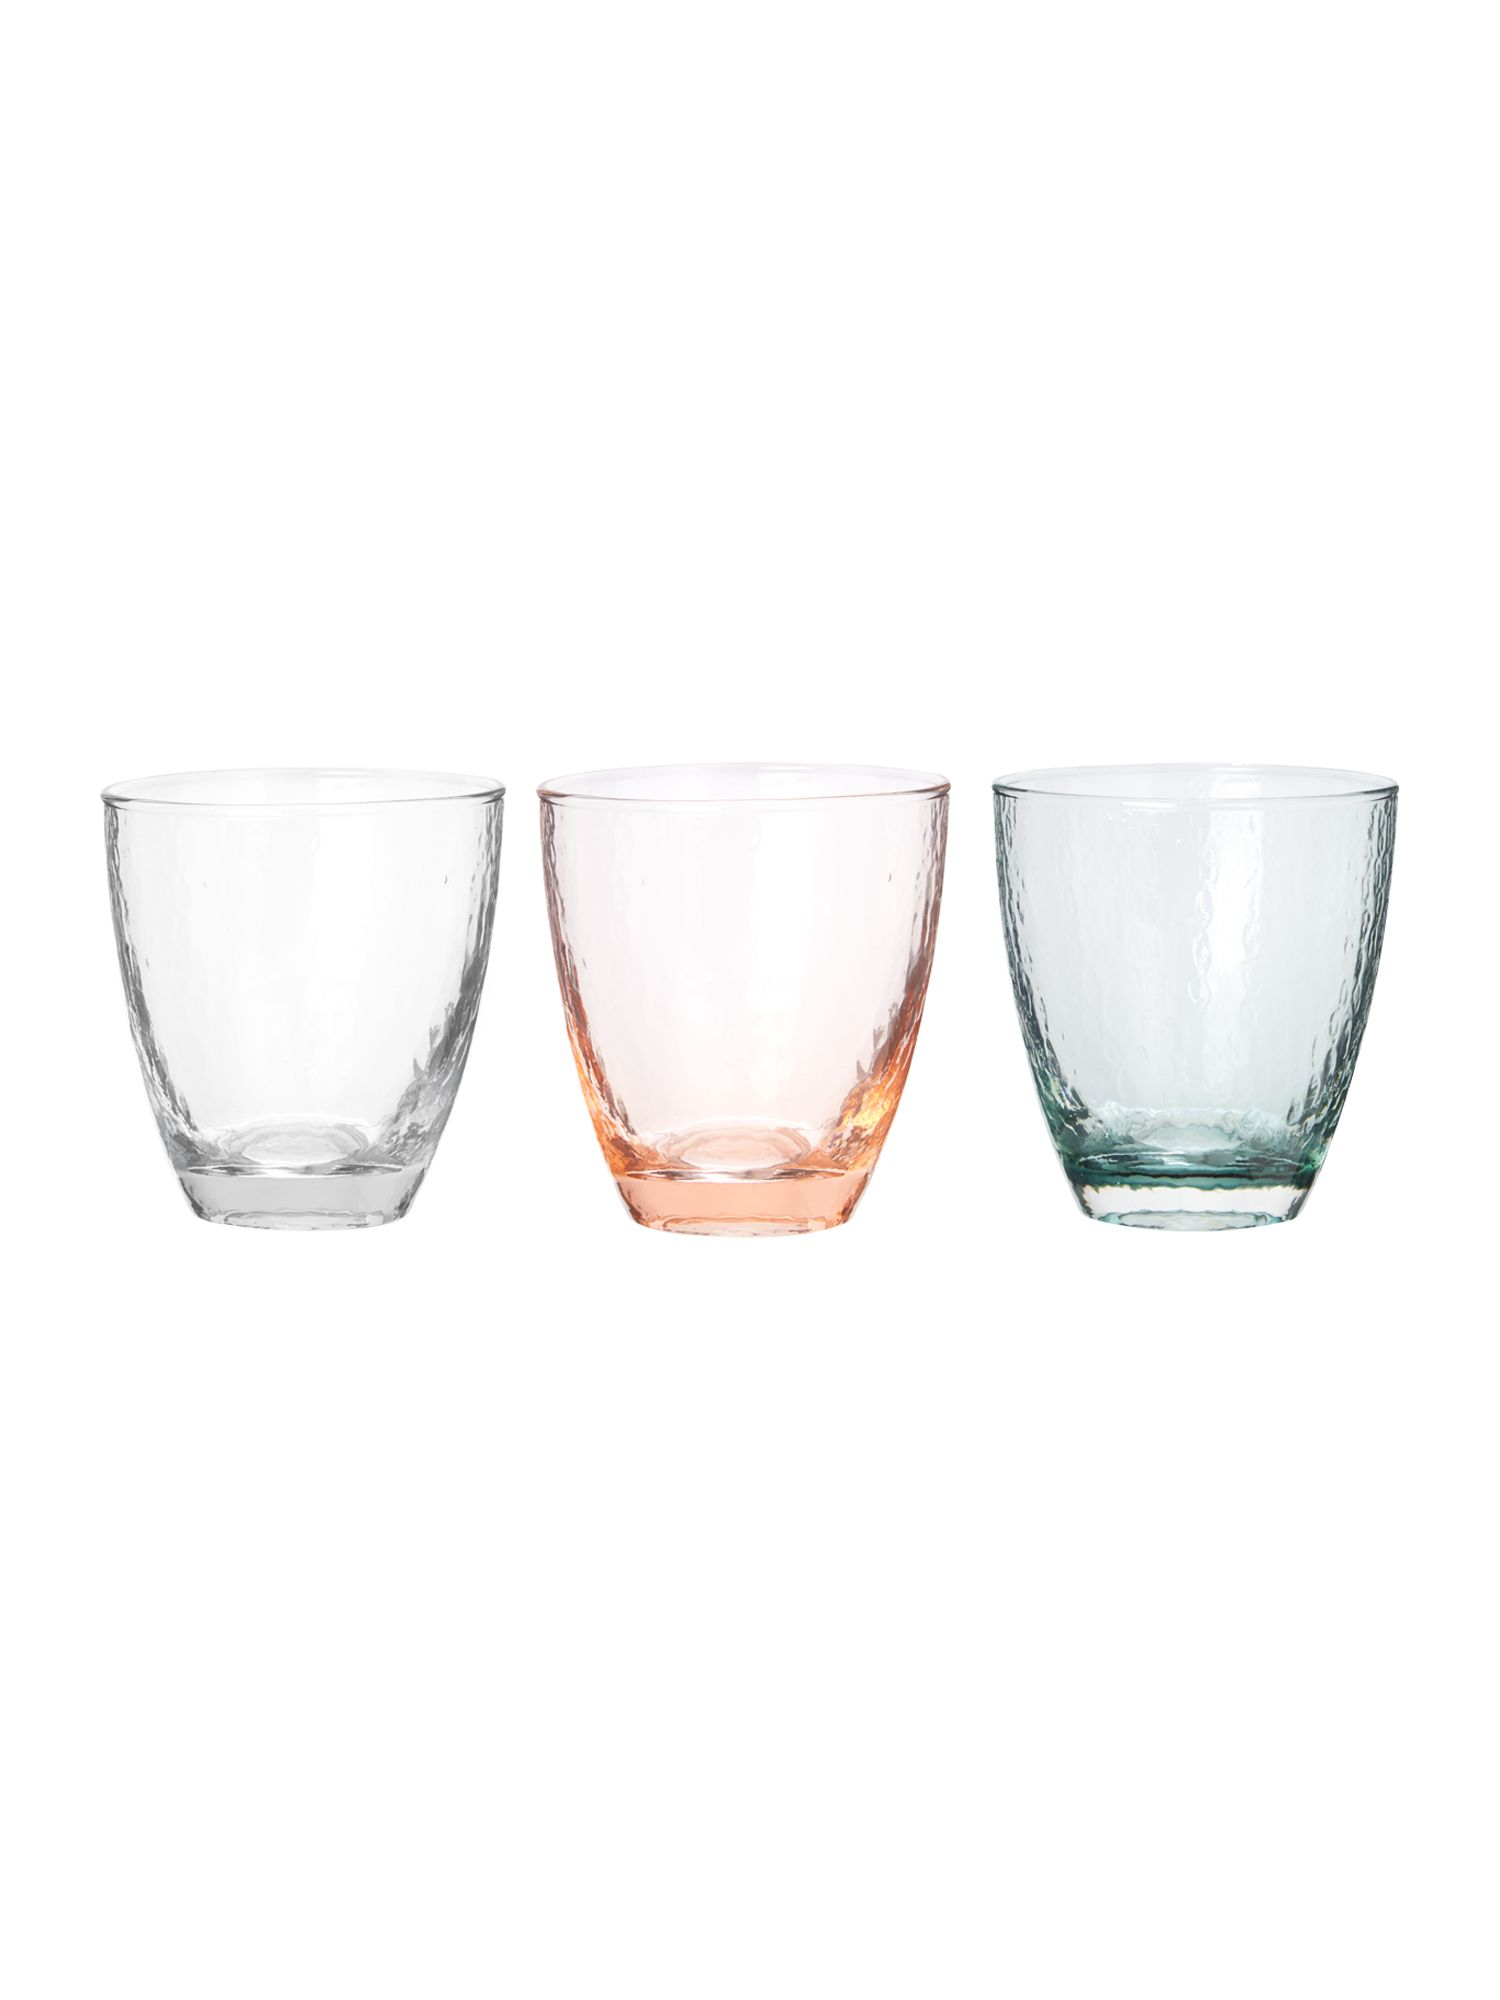 ICE PATTERN WATER GLASS Range